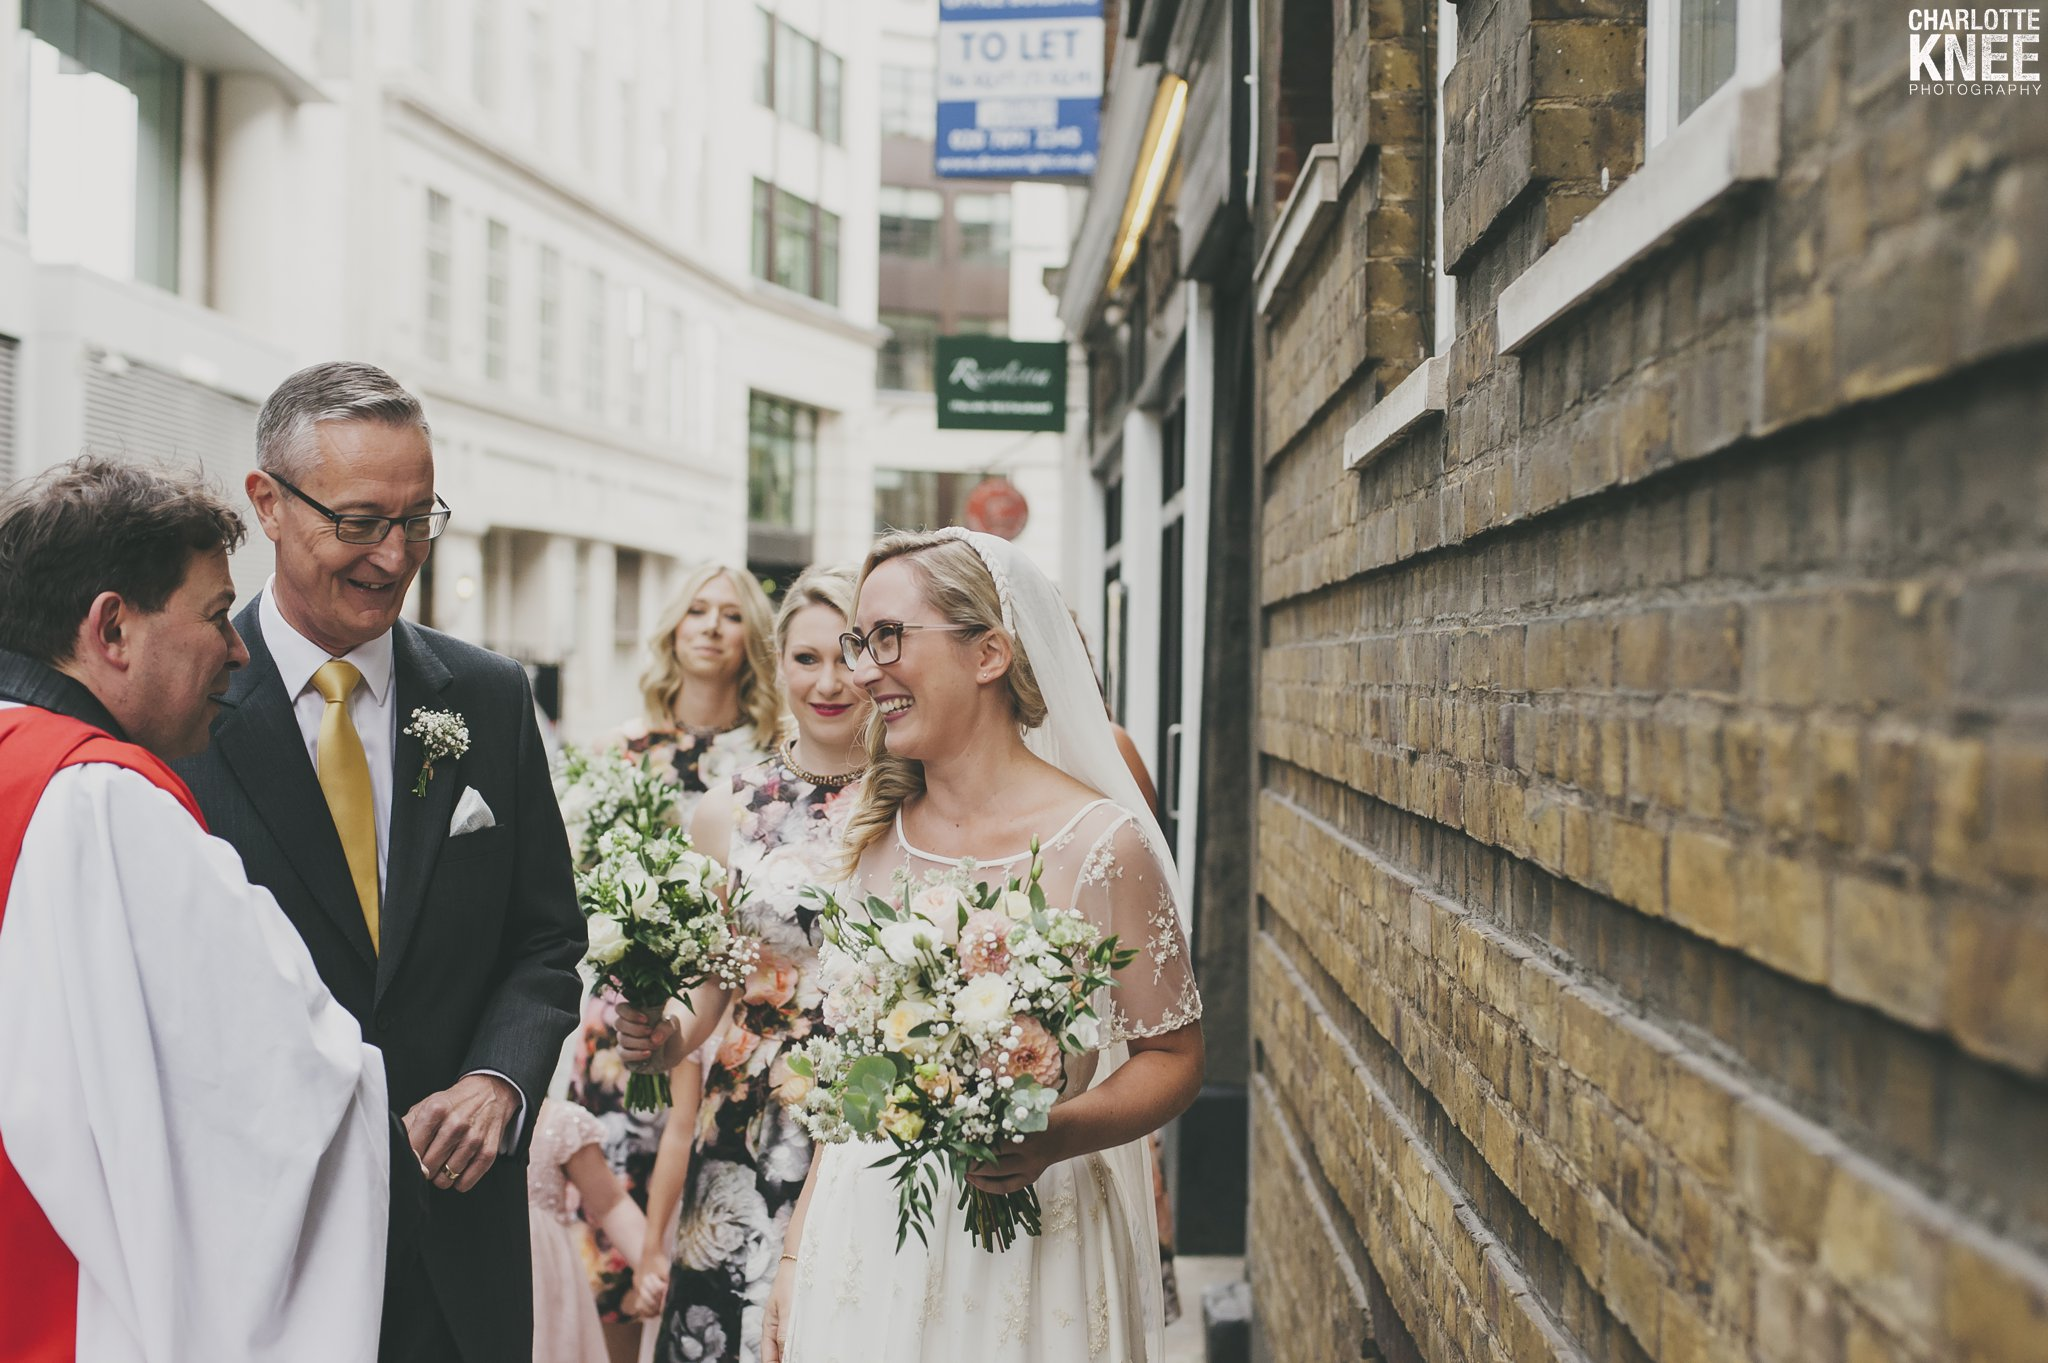 Saddlers Hall London Wedding Photography Copyright Charlotte Knee Photography_0067.jpg